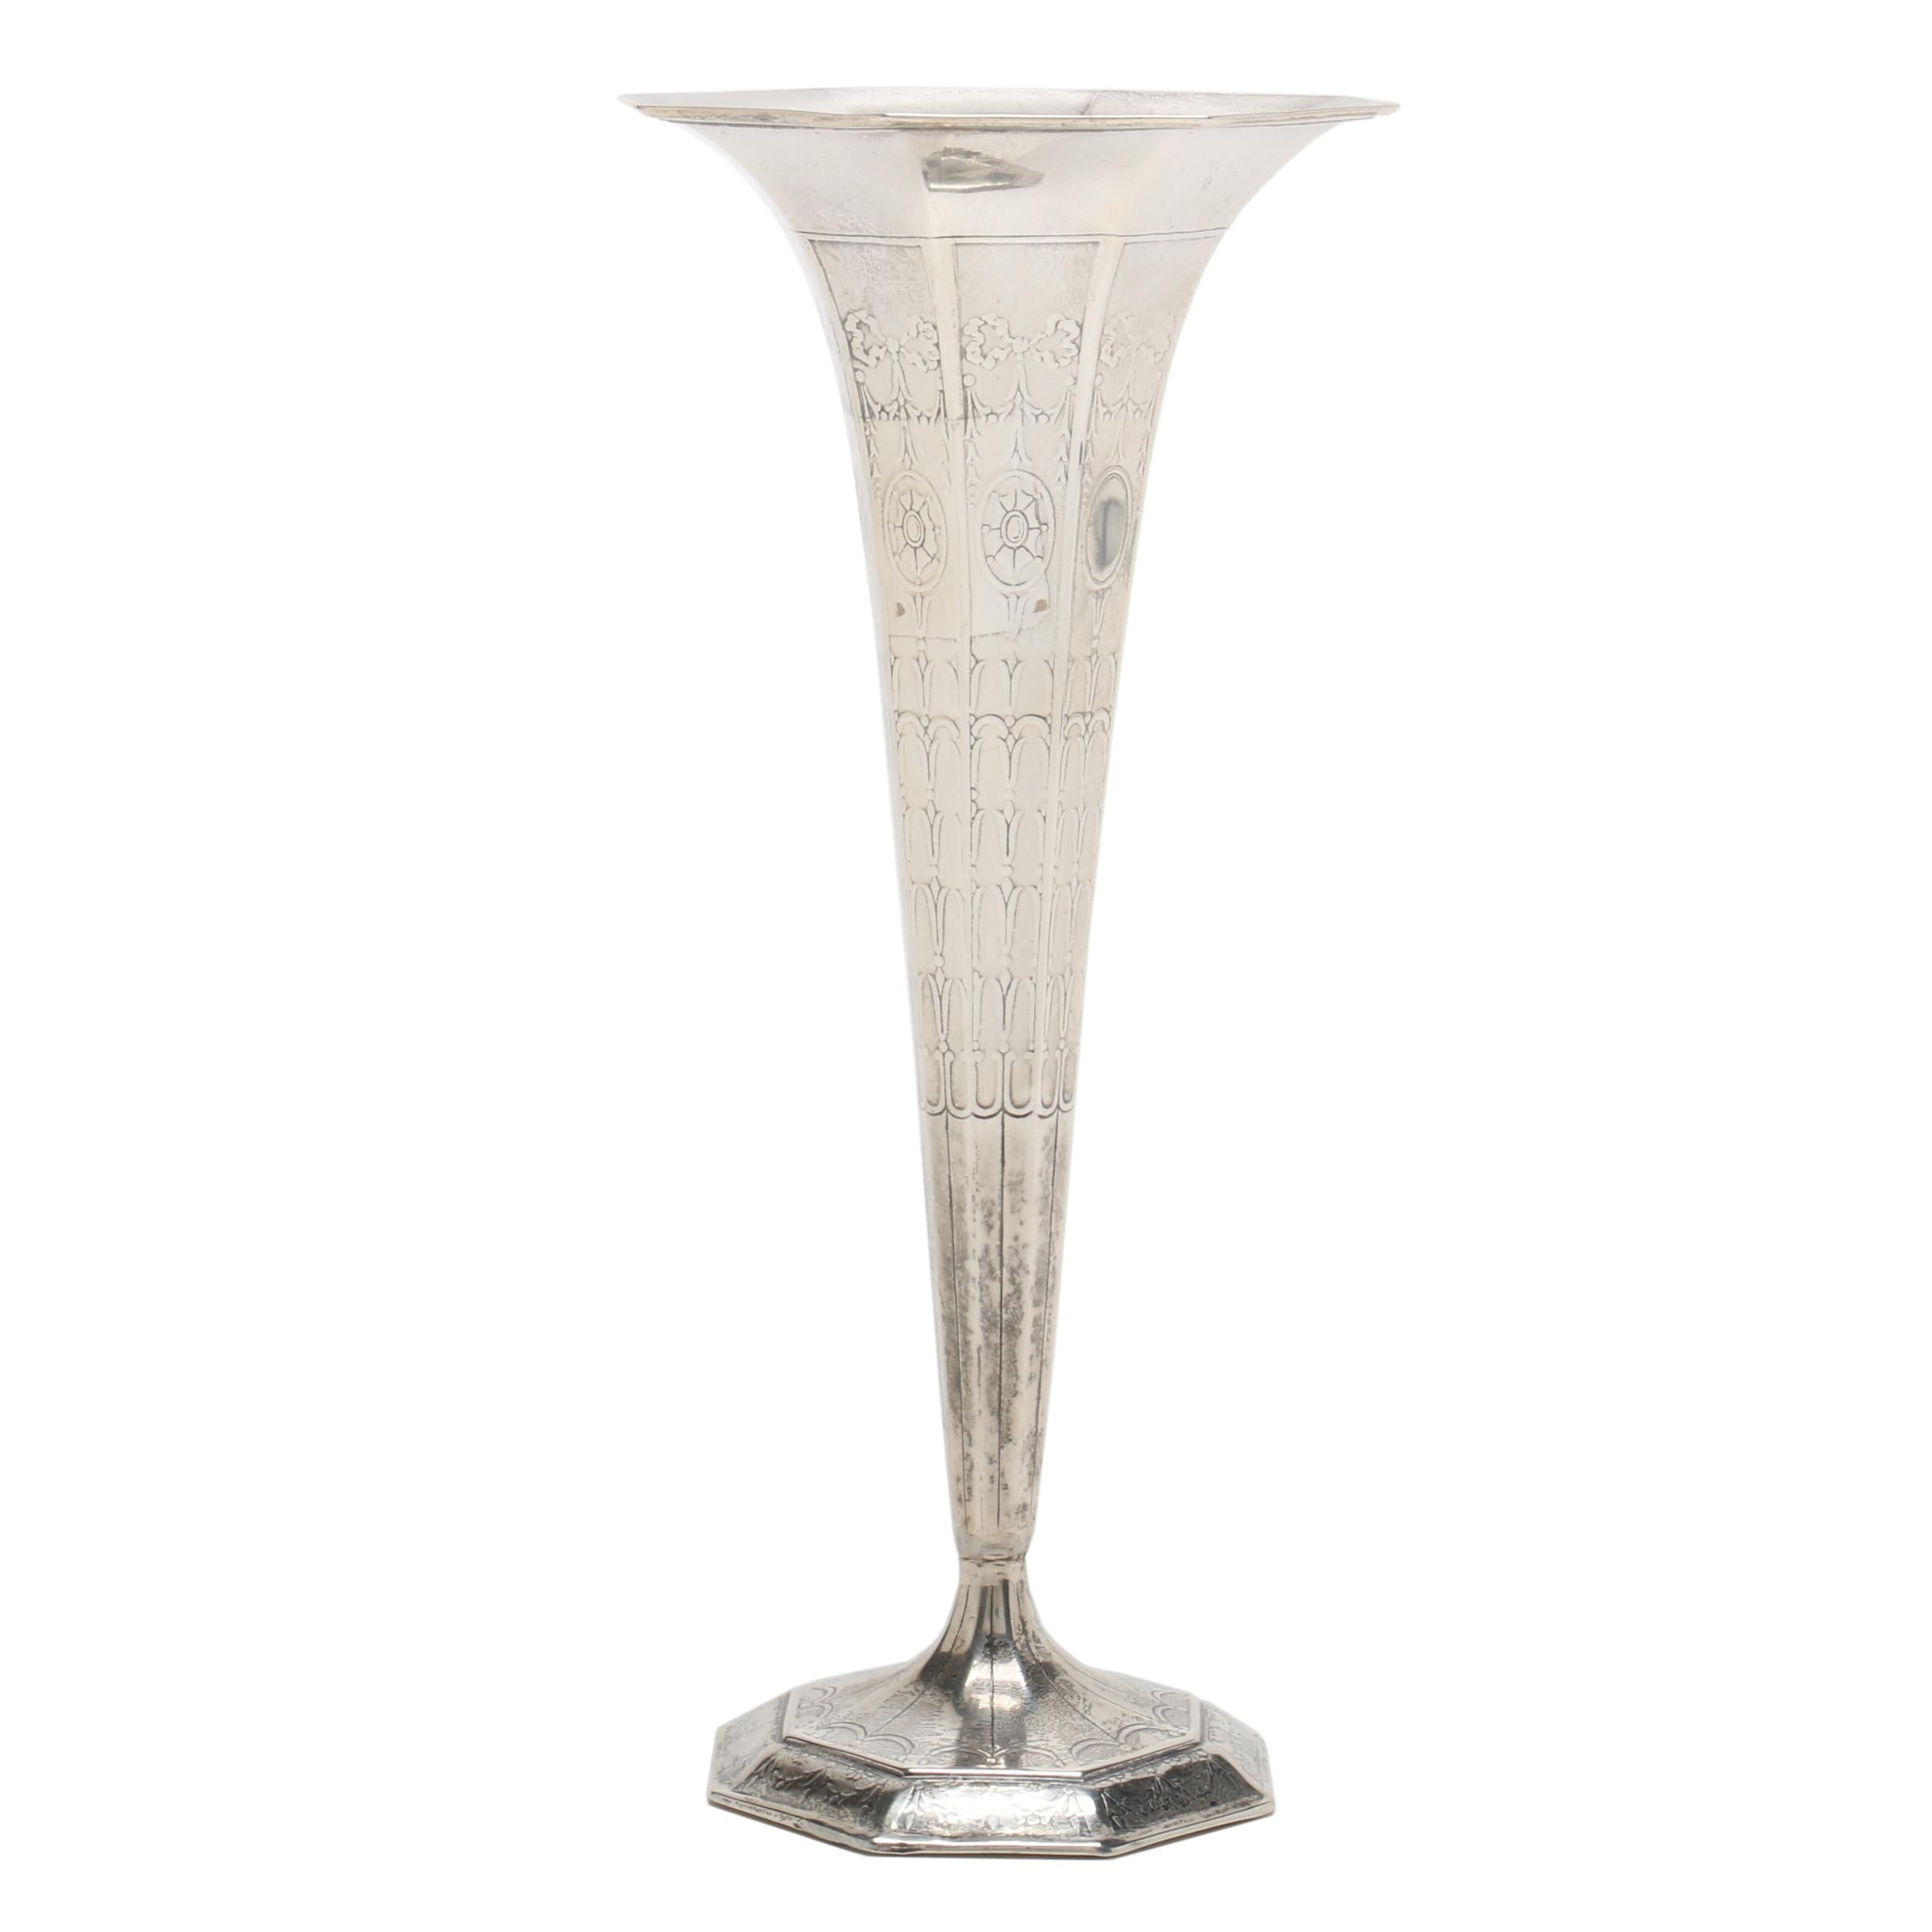 Tiffany & Co. Weighted Sterling Silver Embossed Trumpet Vase